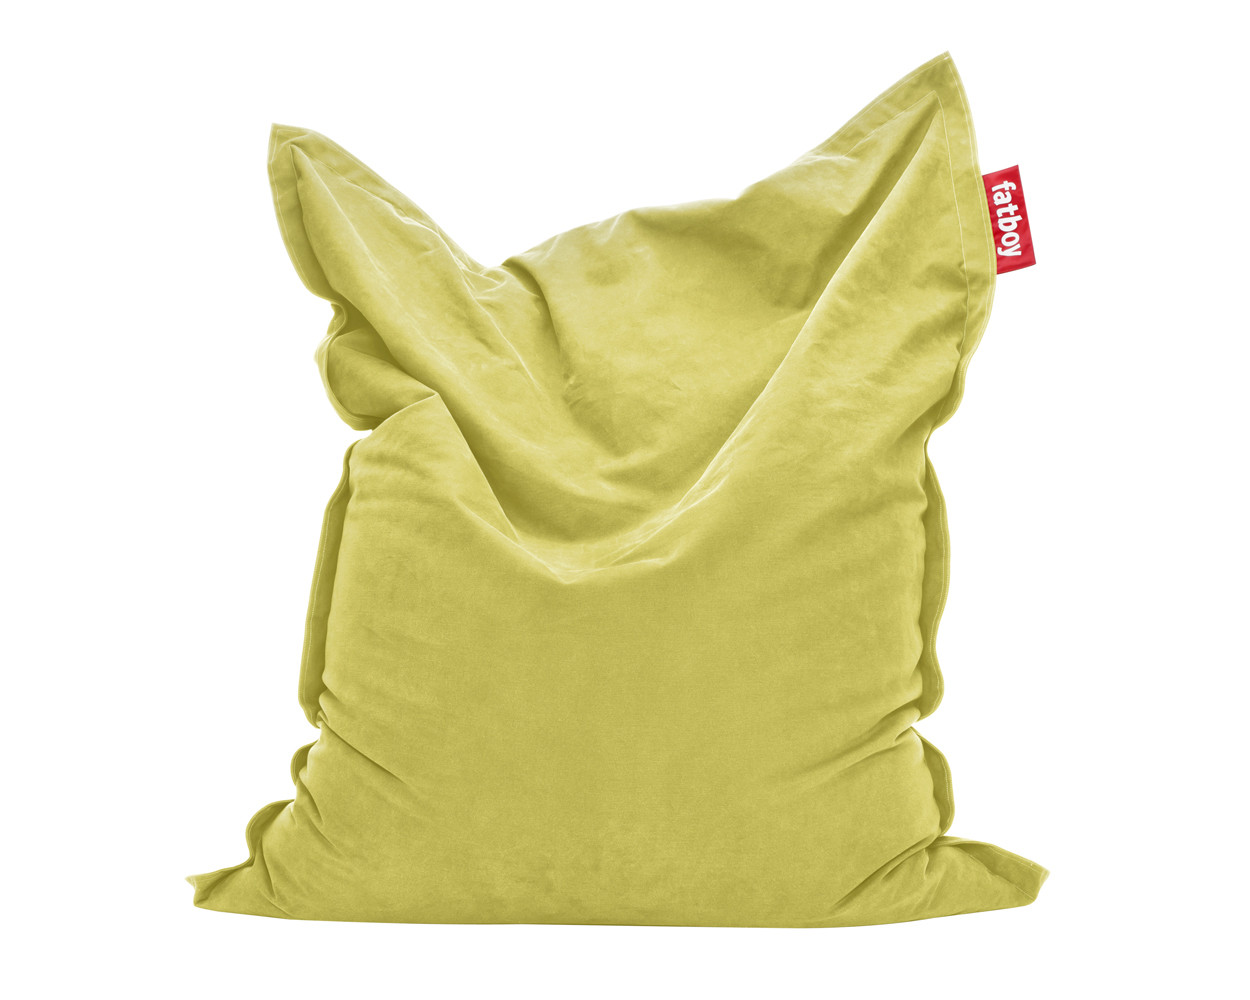 Yellow Fatboy The Original Bean Bag